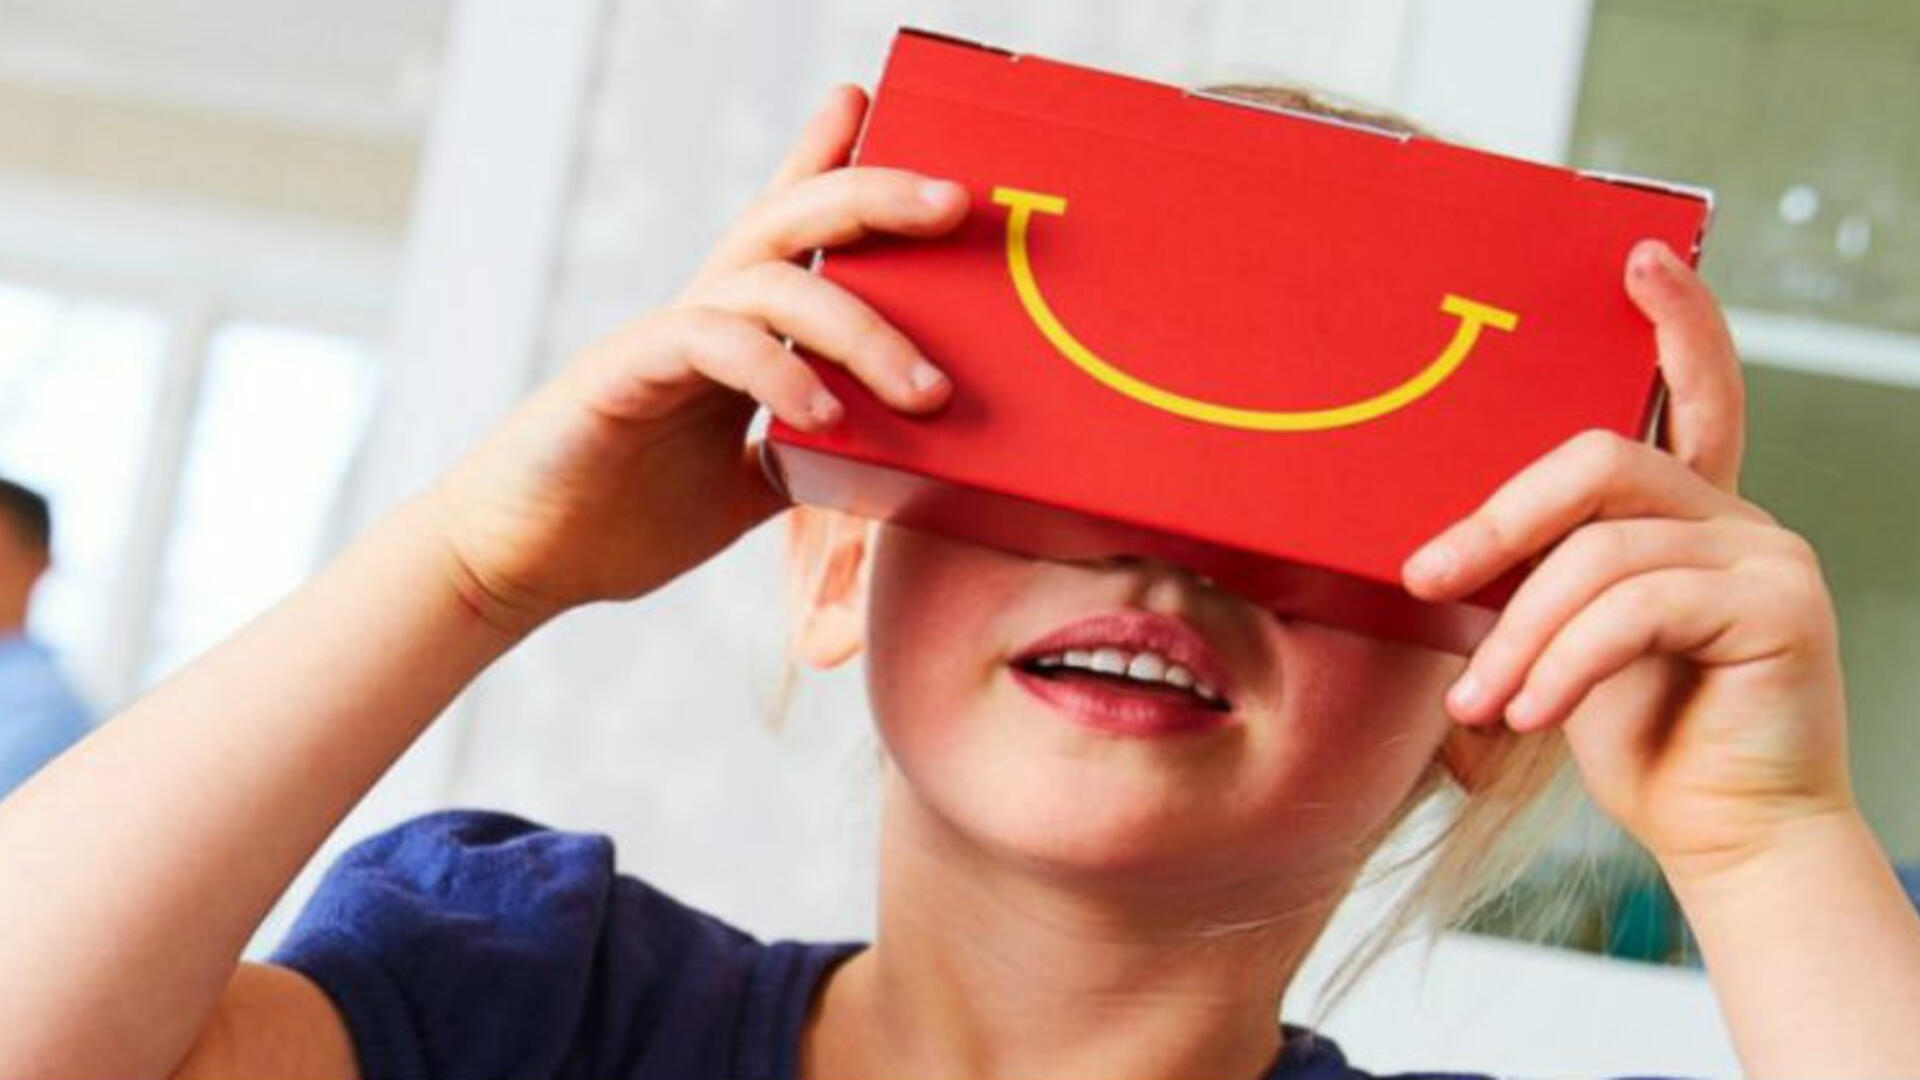 Coke, McDonald's Get Kids into Virtual Reality With Cheap VR Headsets